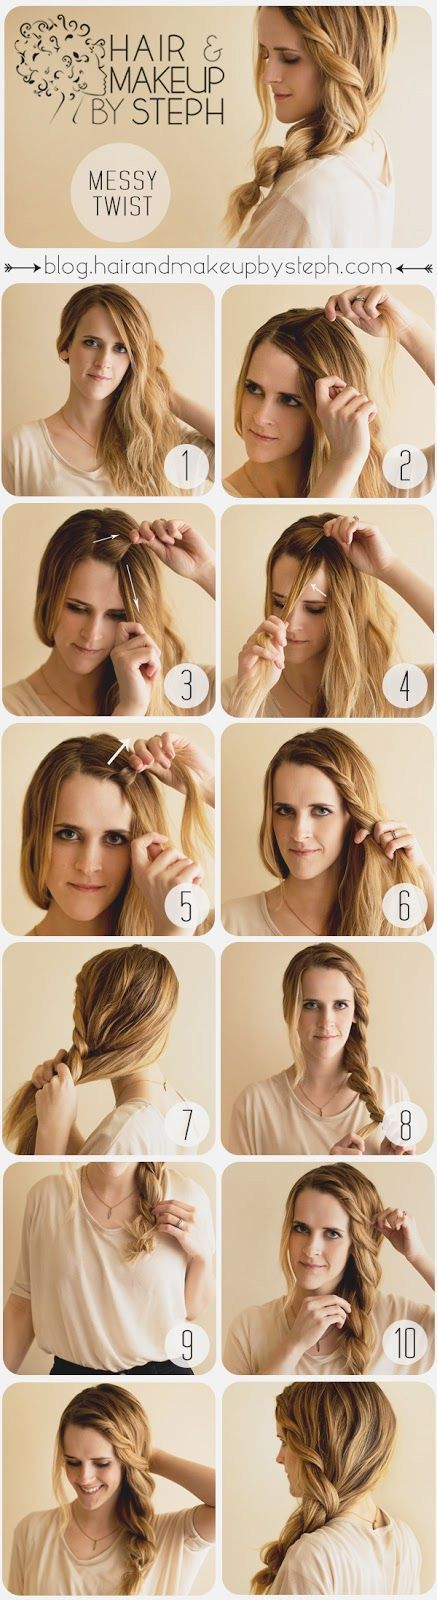 10 Easy Hairstyles For Bangs To Get Them Out Of Your Face Gurl Com Hair Styles Long Hair Styles Cool Hairstyles